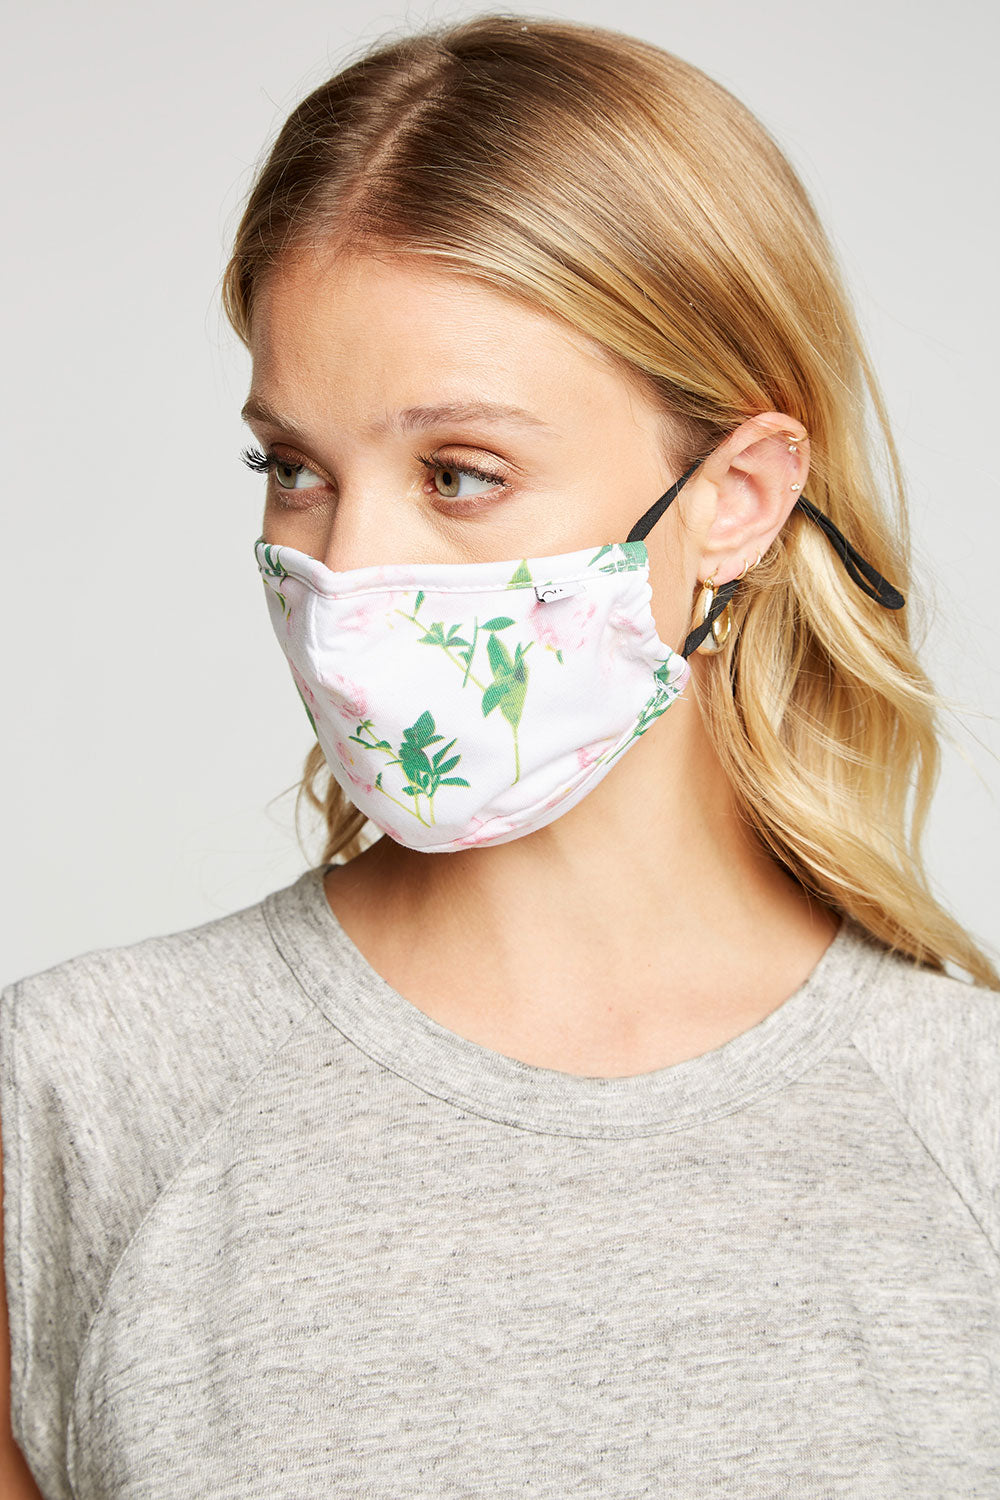 Rose Garden Mask MASKS - chaserbrand